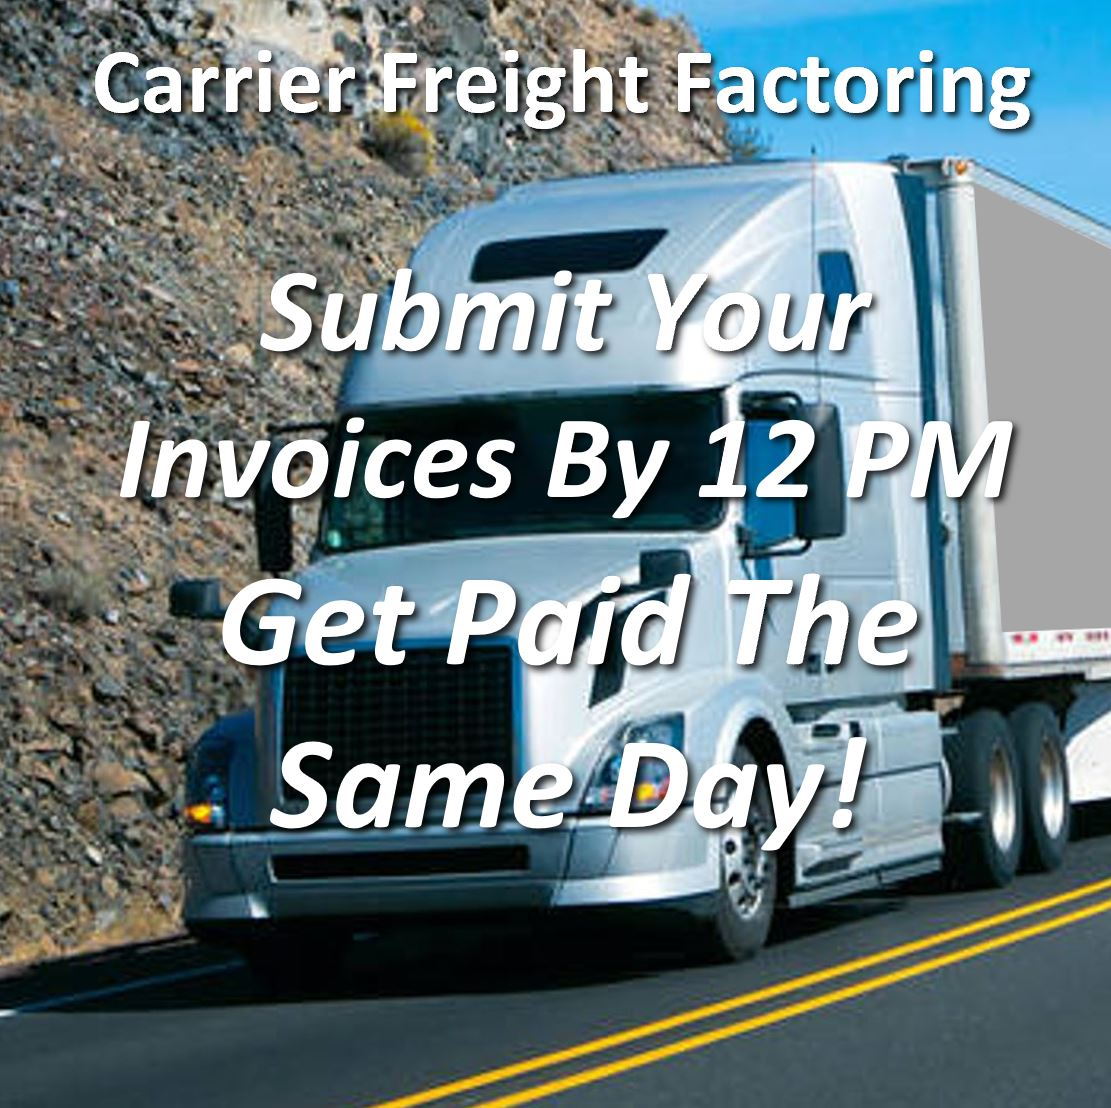 InstaPay Trucker Factoring Get Paid The ame Day